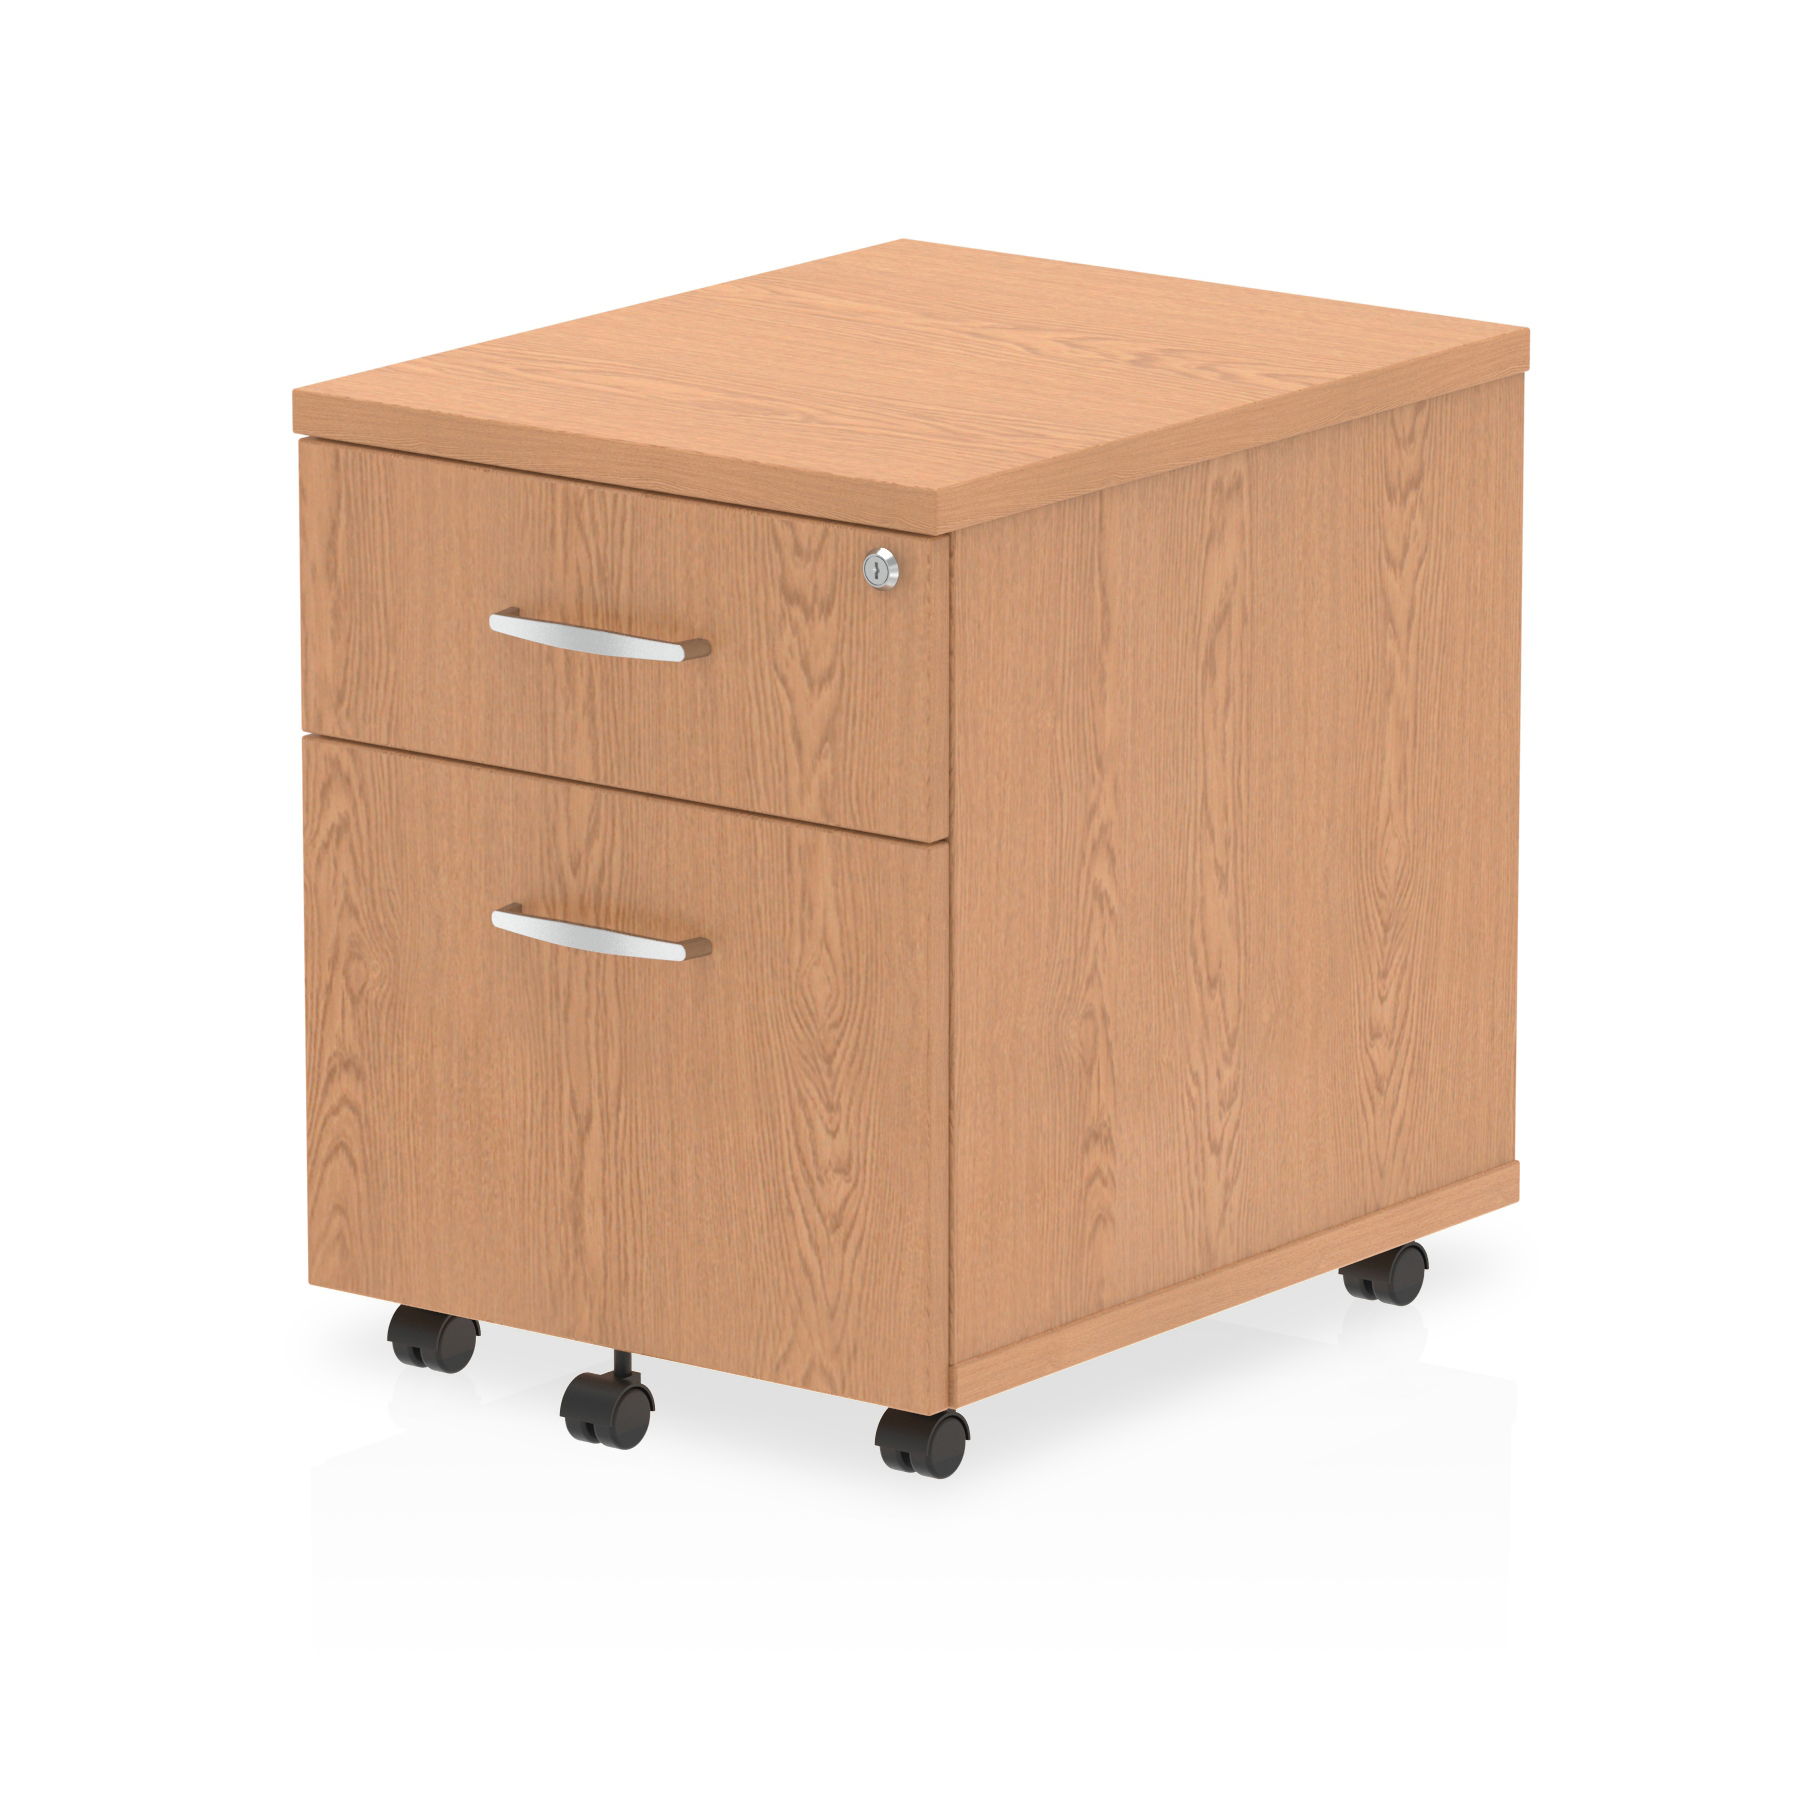 Trexus 2 Drawer Mobile Pedestal 430x500x510mm Oak Ref I000772